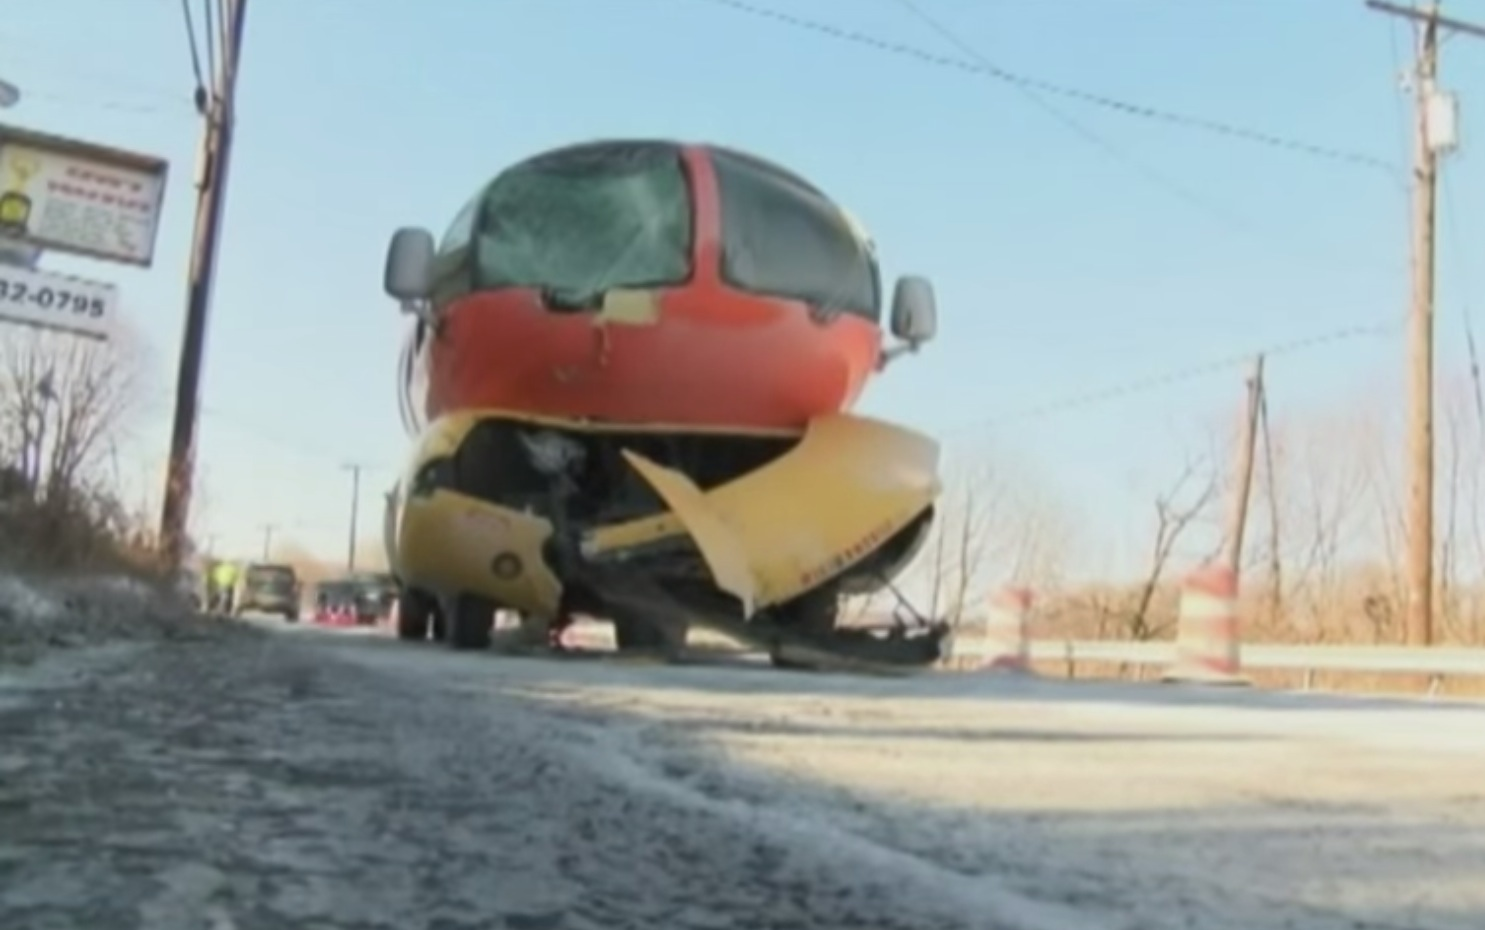 Ad Toy Chicago Oscar Mayer The Whistles Little Oscar Used To Give Out At Stops Of The Weinermobile 1950s in addition File Wienermobile Bologna further Wienermobile Fun Facts further A Really Peeling Motor British Expat Spends 25 000 Turning Car BANANA also Watch. on oscar mayer mobile